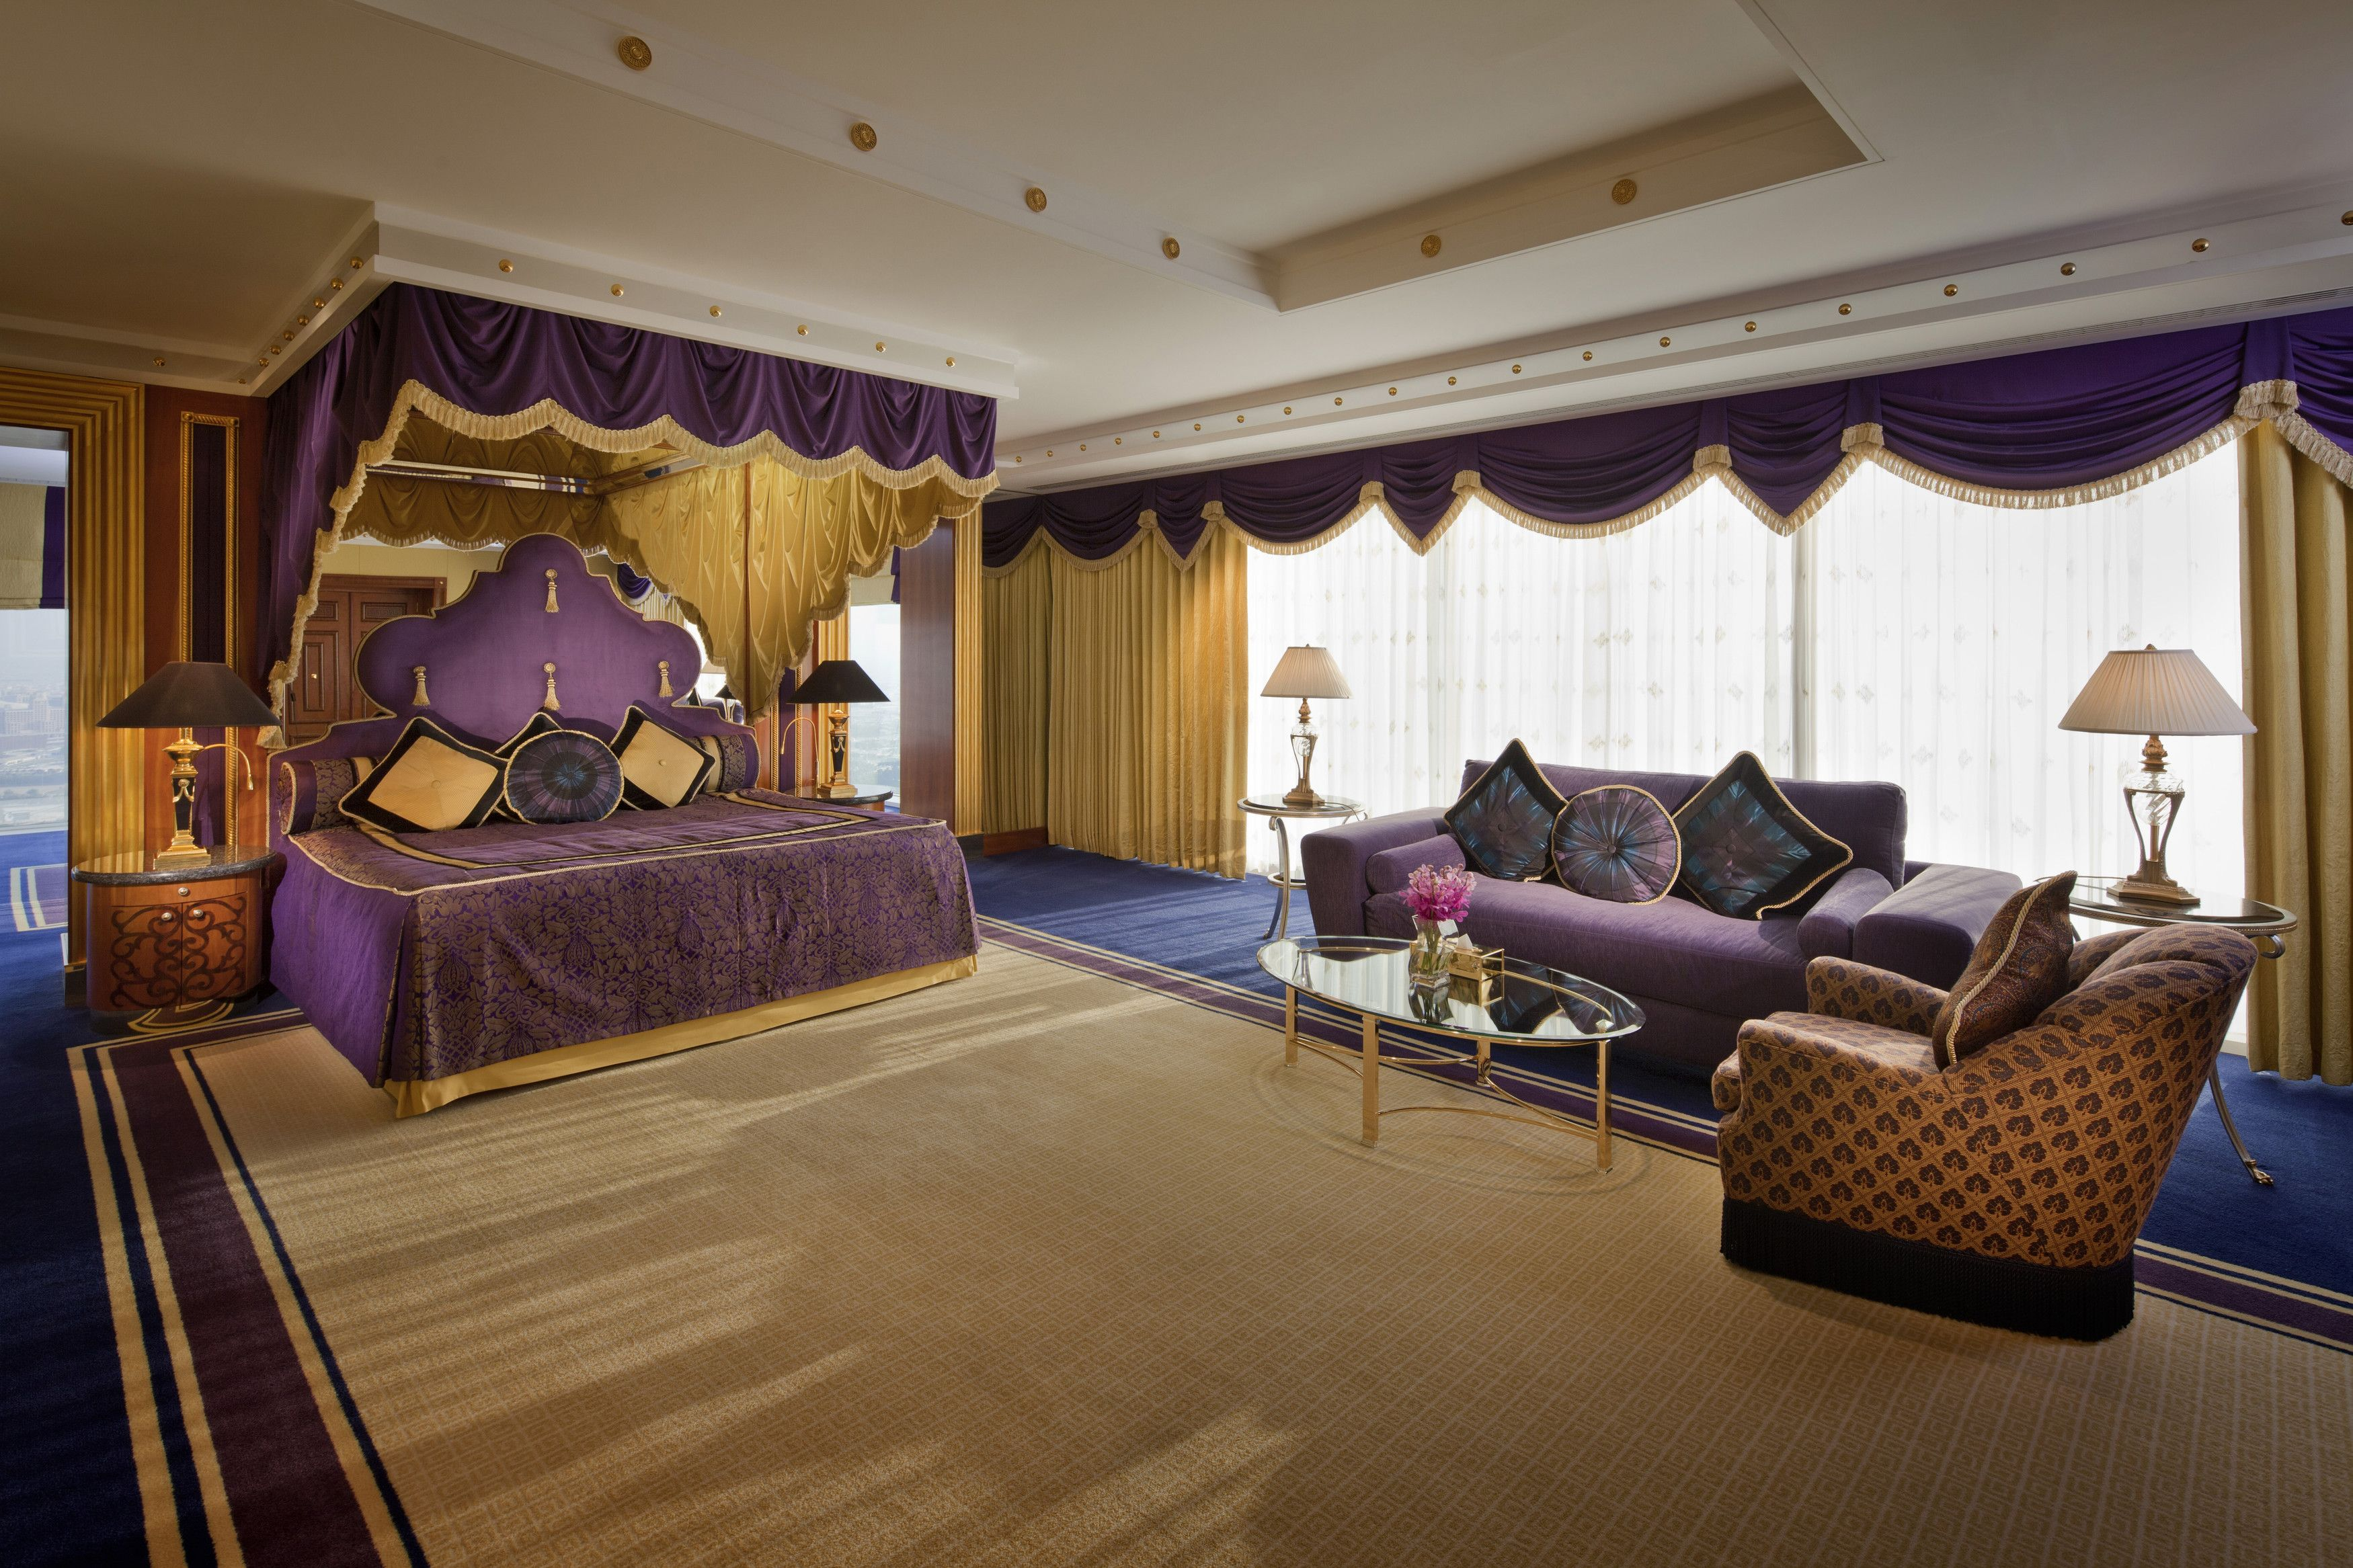 Burj al arab diplomatic suite master bedroom interior for Decoration interieur chambre hotel